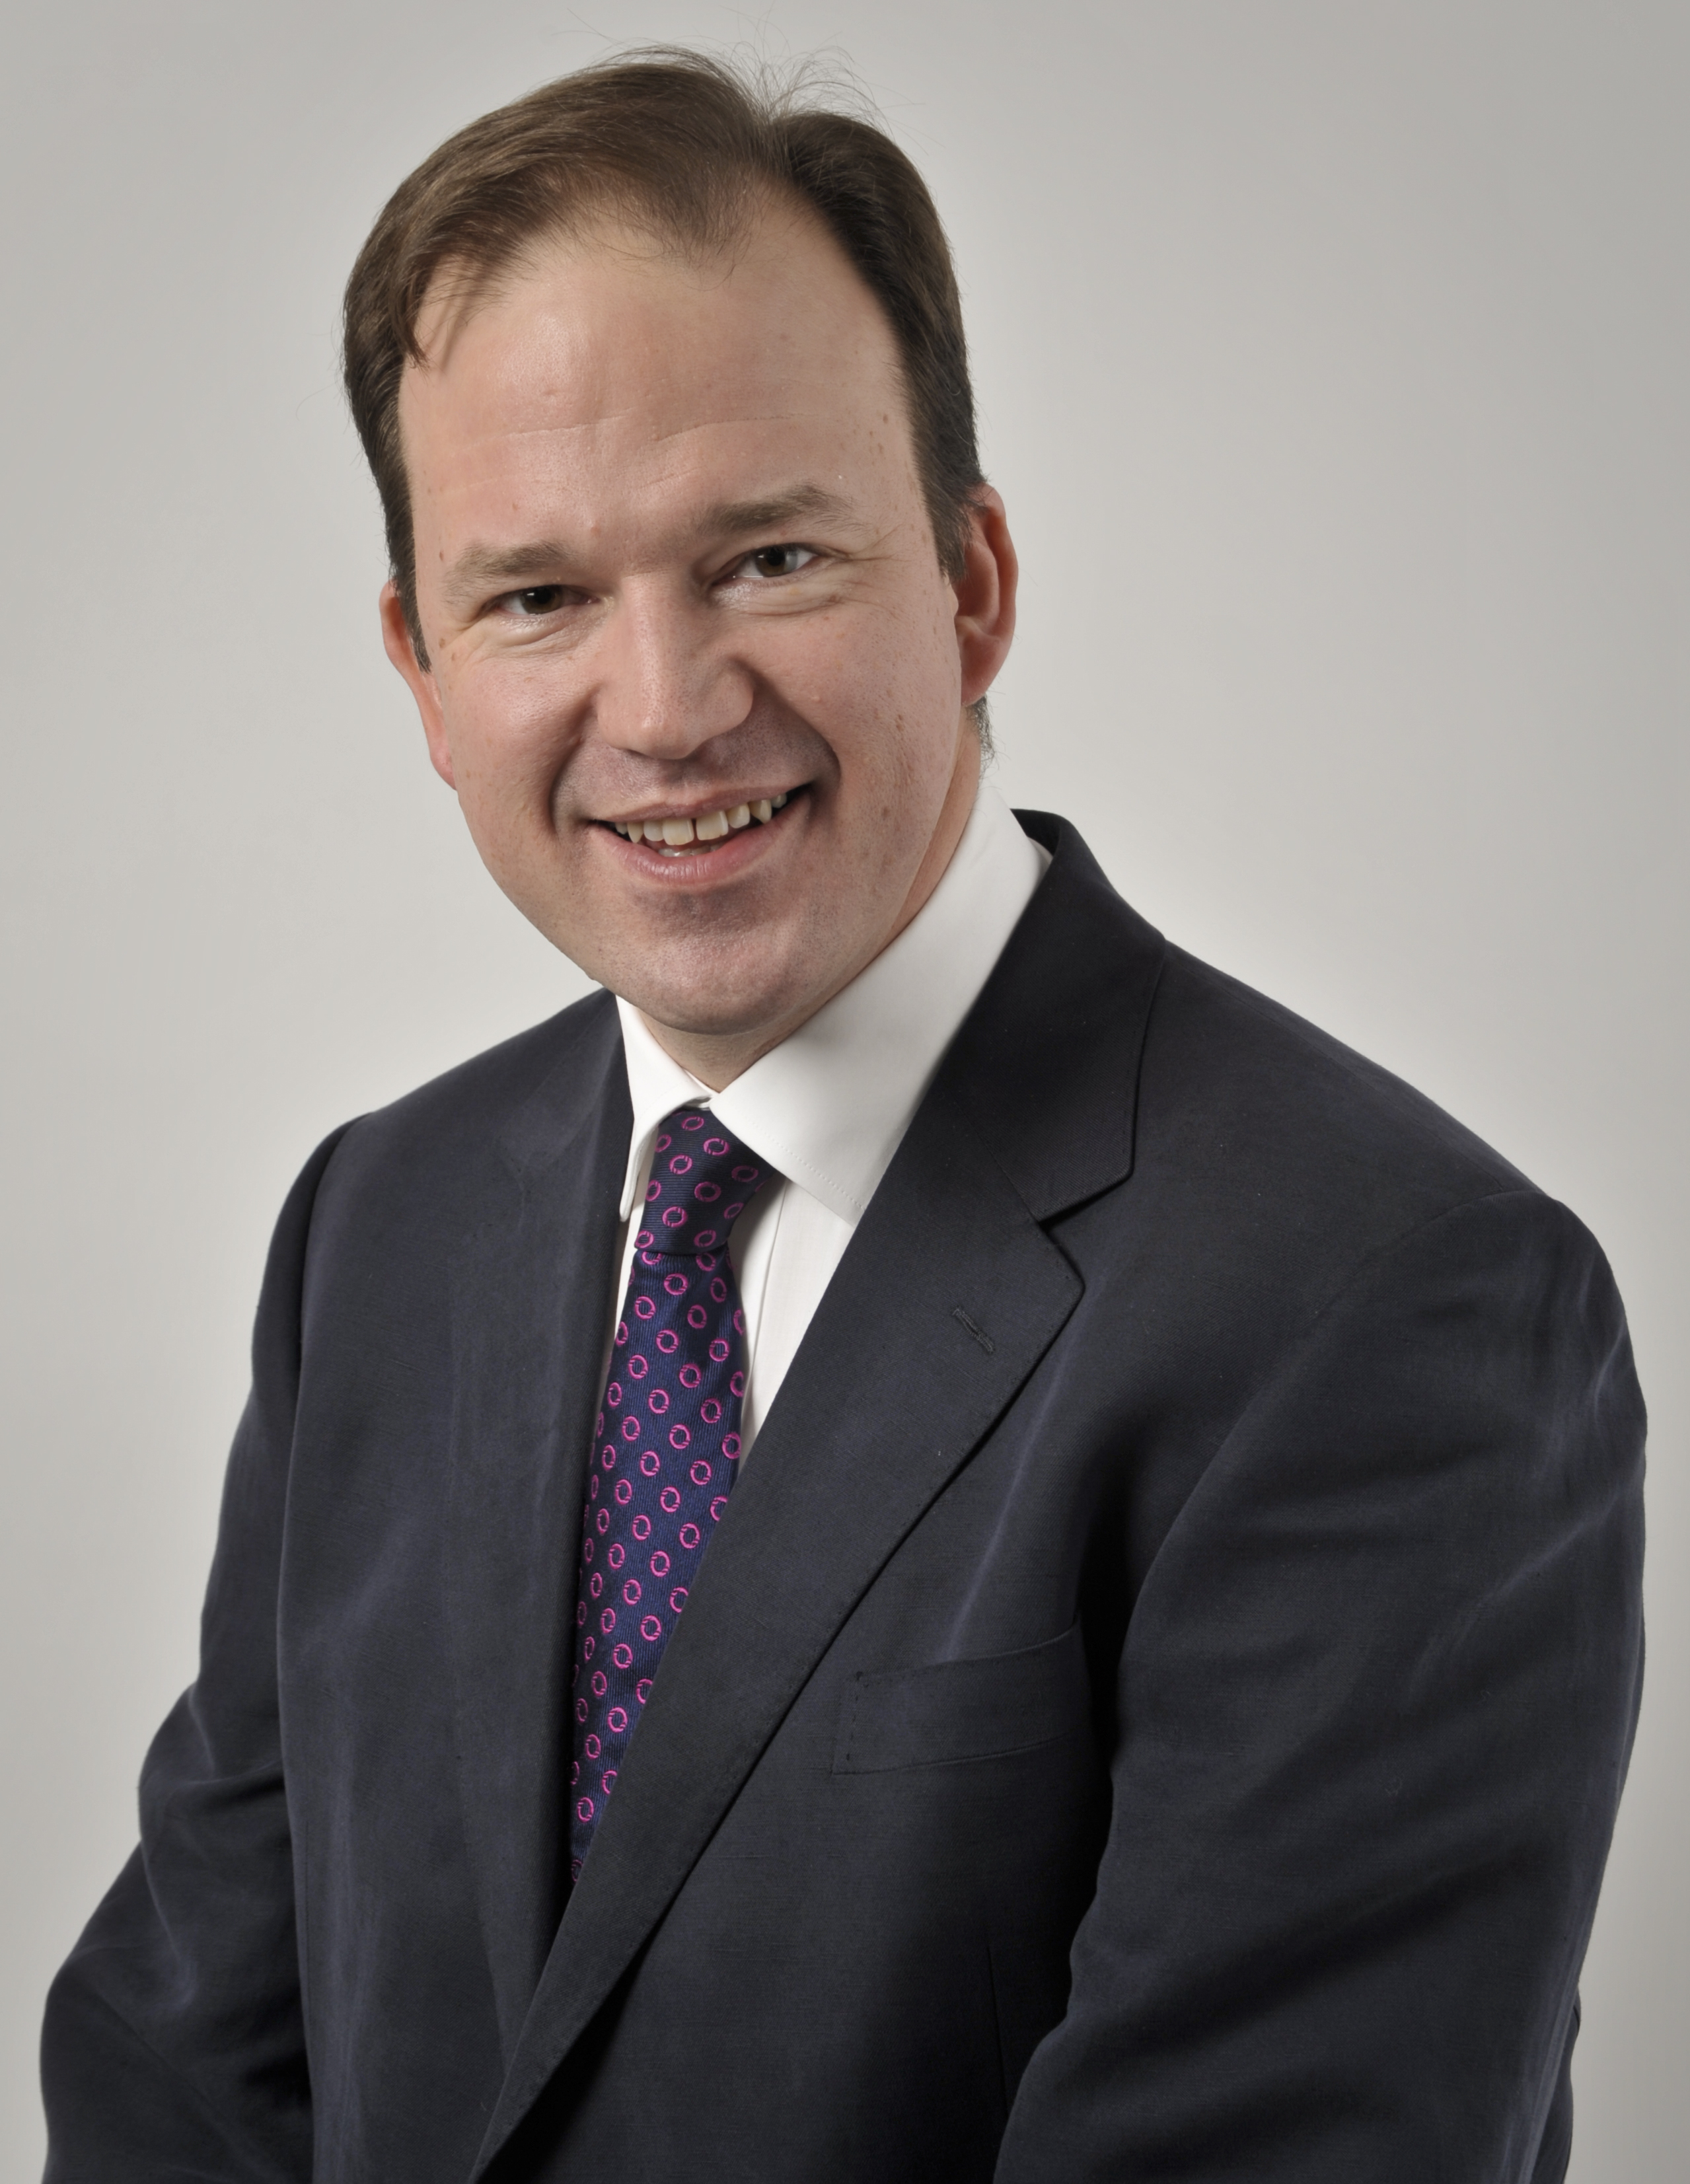 Jesse Norman MP Conservative MP for